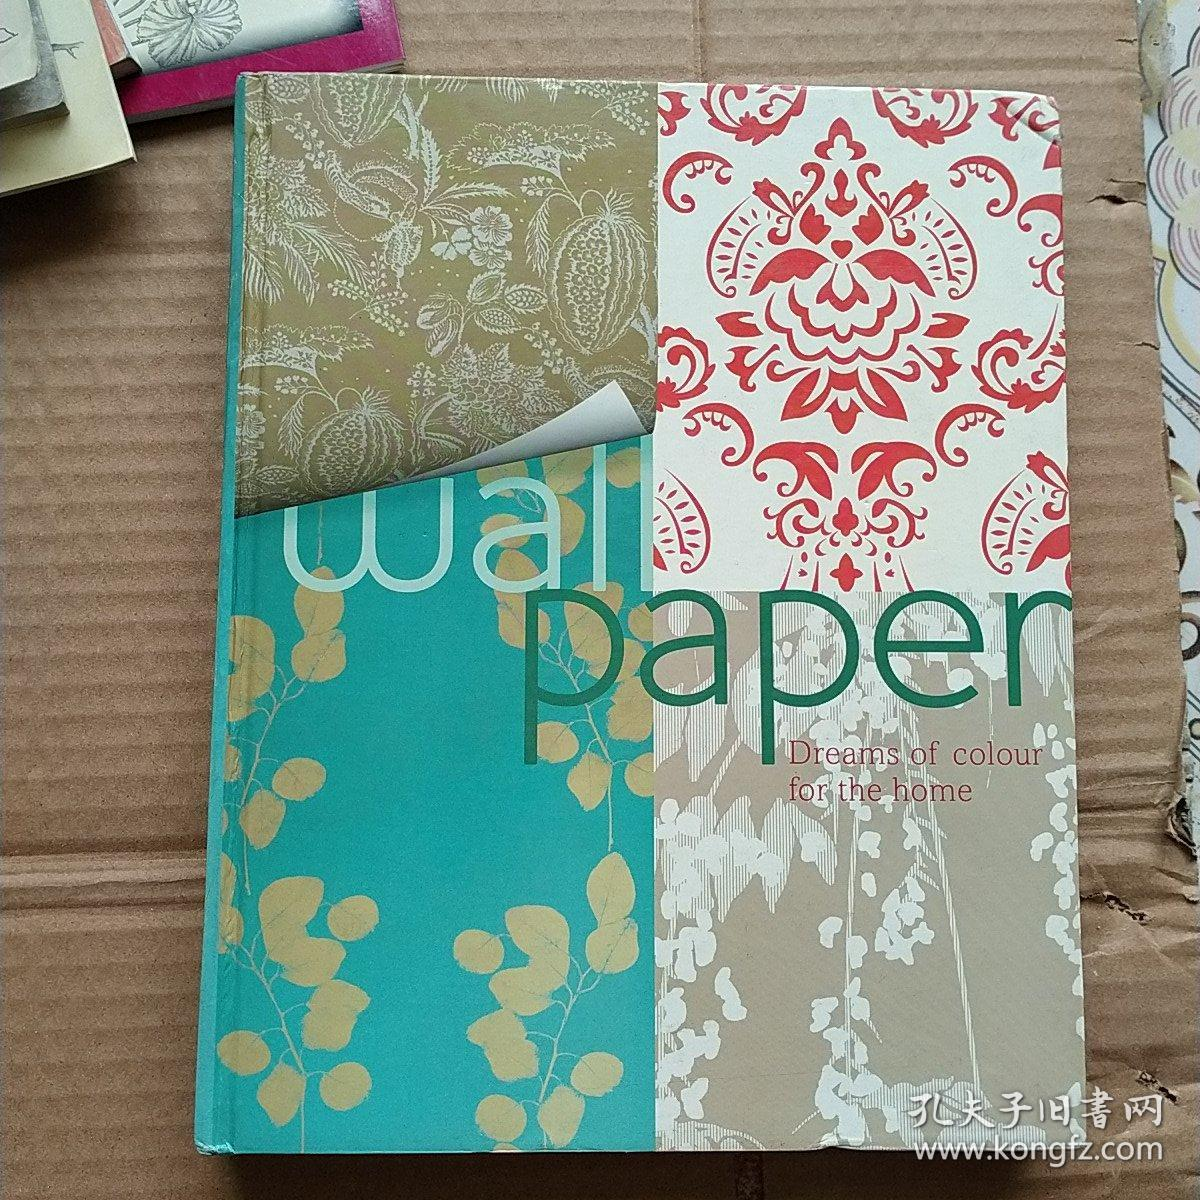 wall paper:Dreams of color for the home